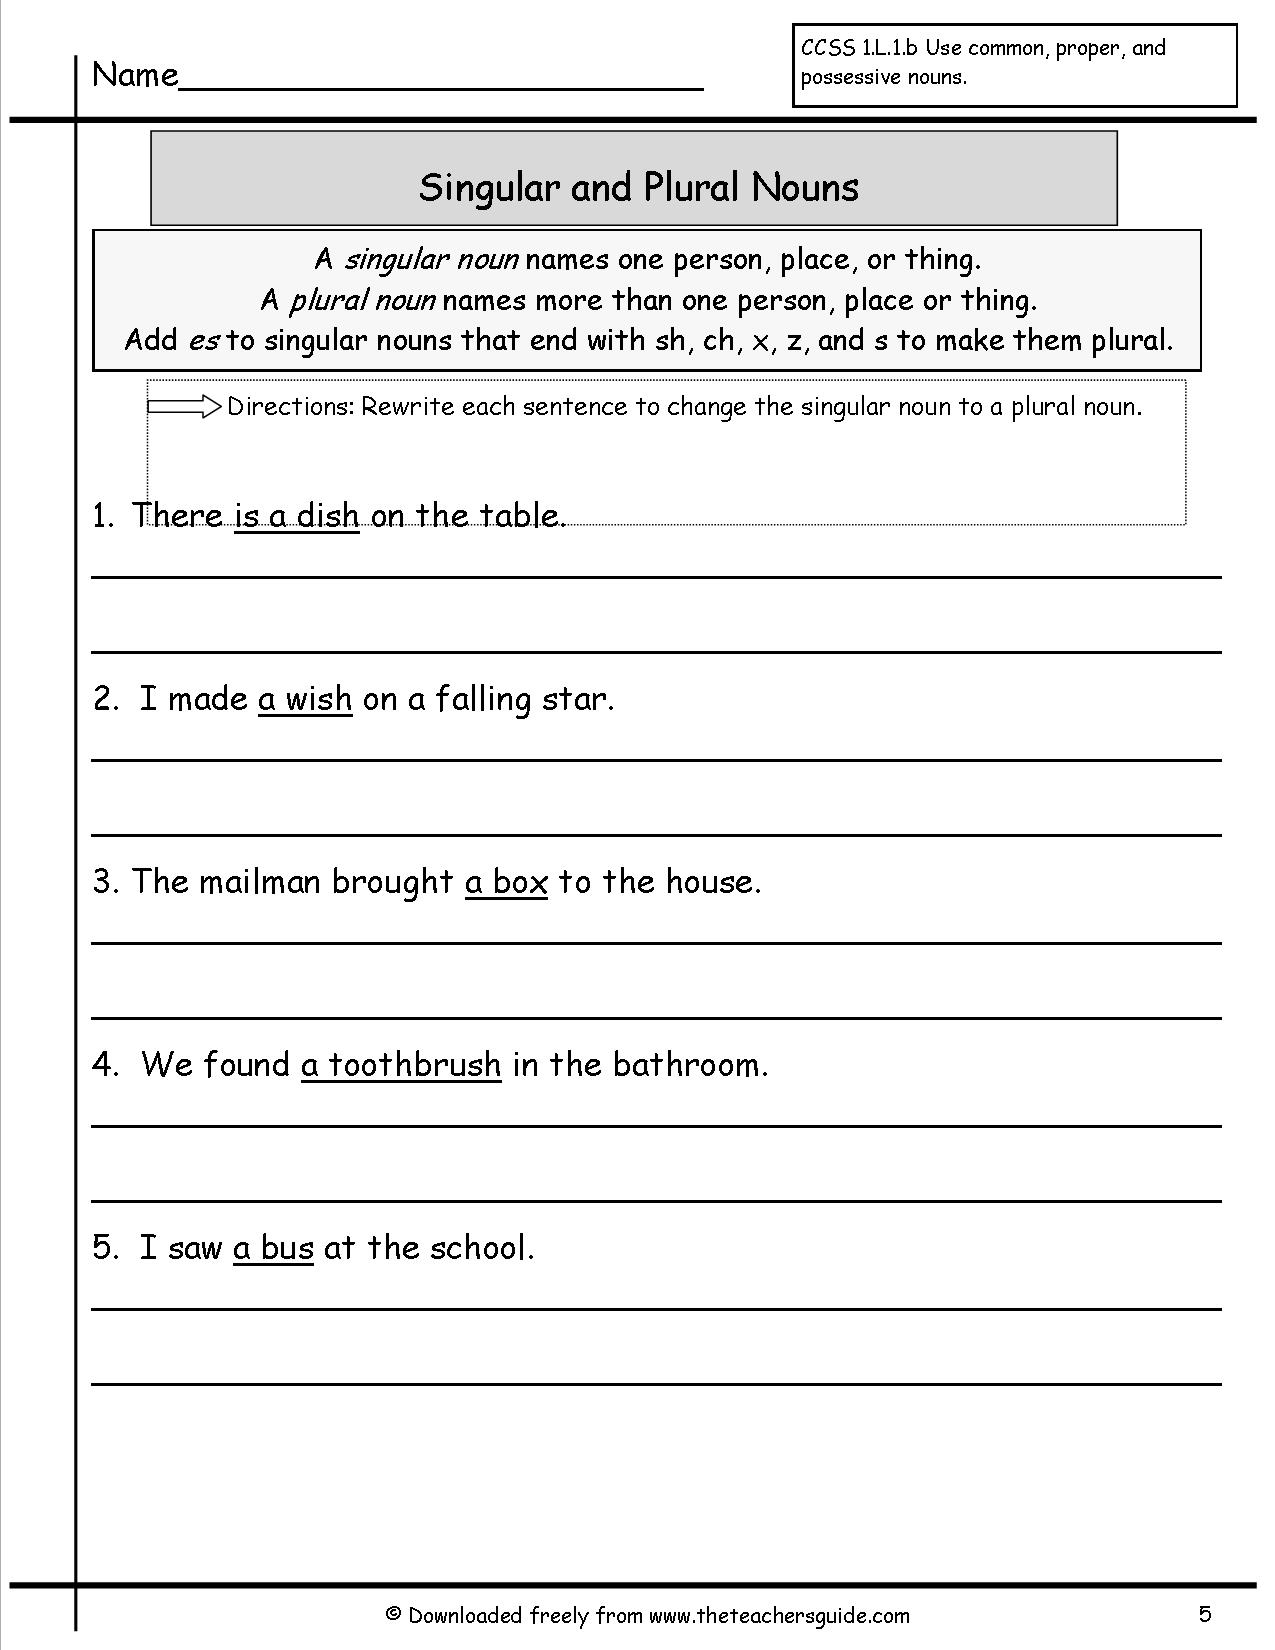 11 Best Images Of Singular And Plural Nouns Worksheets